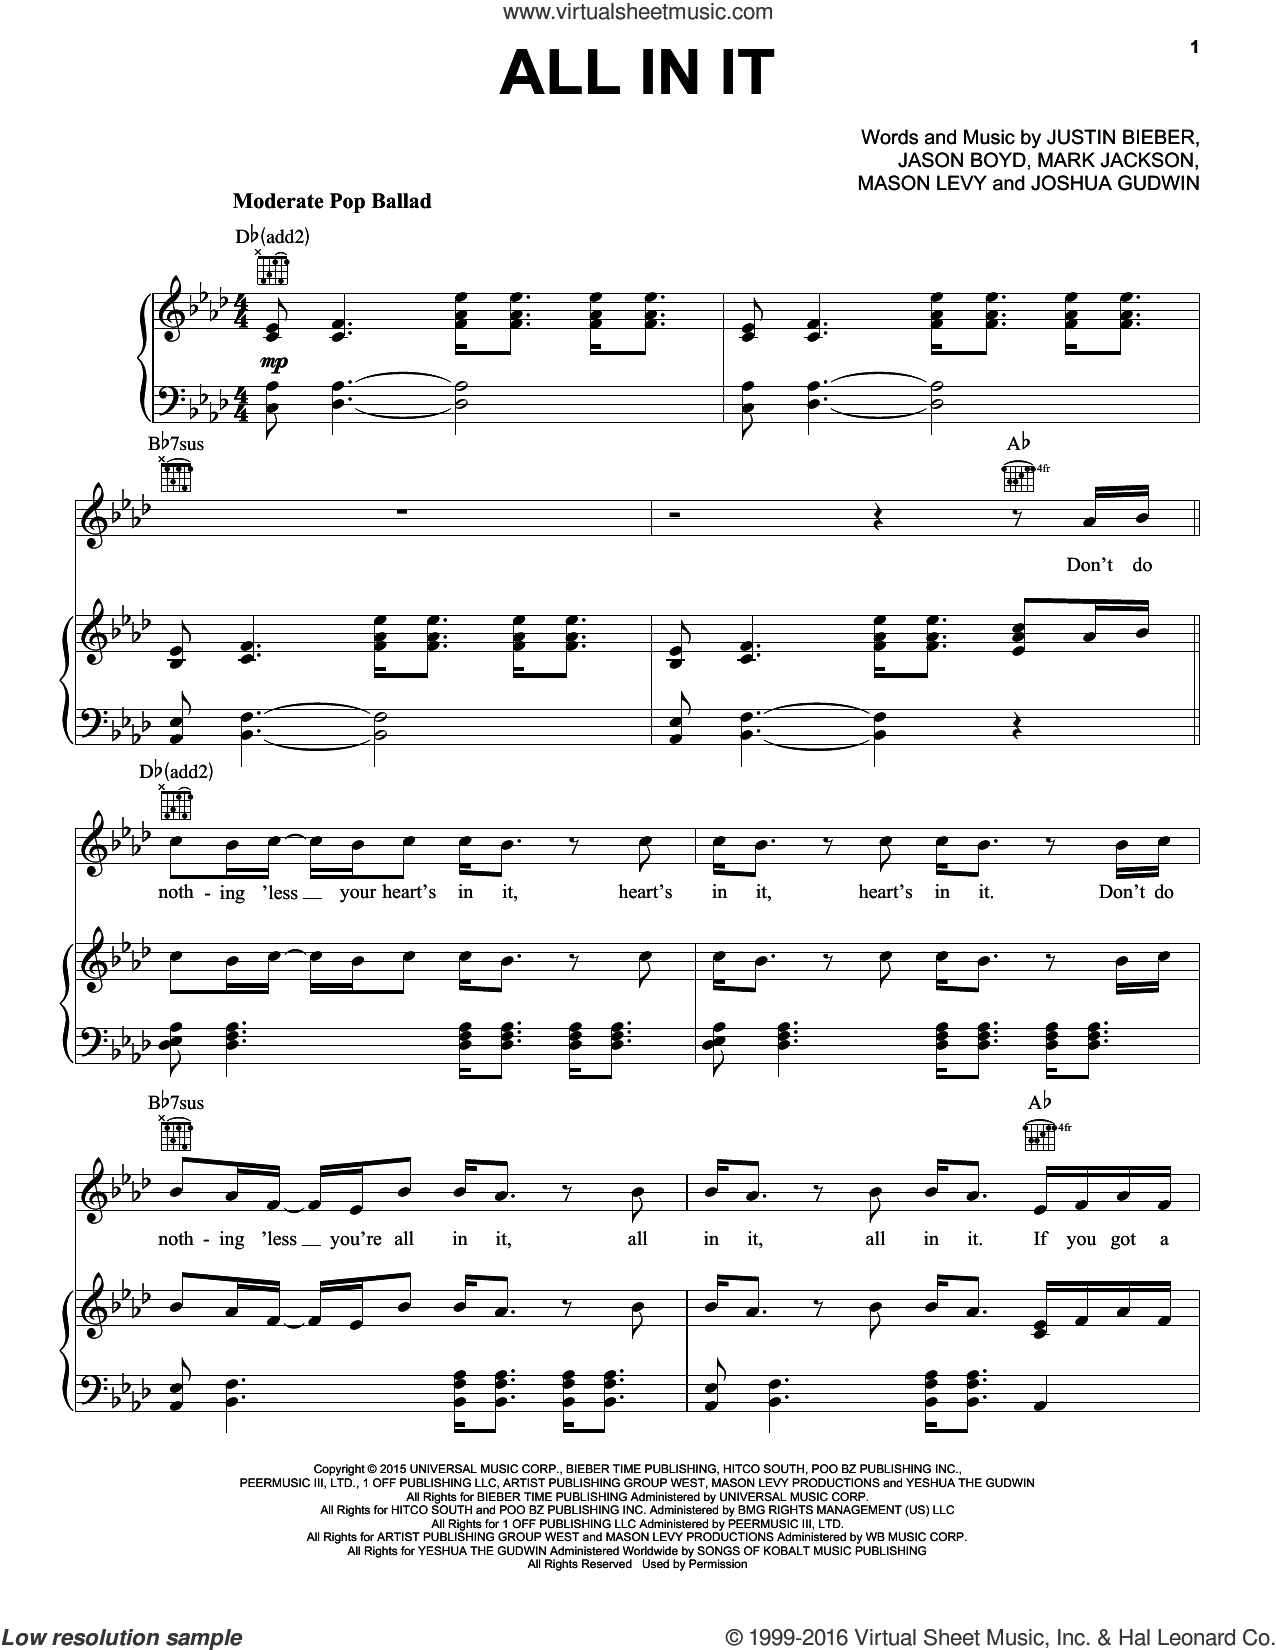 All In It sheet music for voice, piano or guitar by Justin Bieber, Jason Boyd, Joshua Gudwin, Mark Jackson and Mason Levy, intermediate